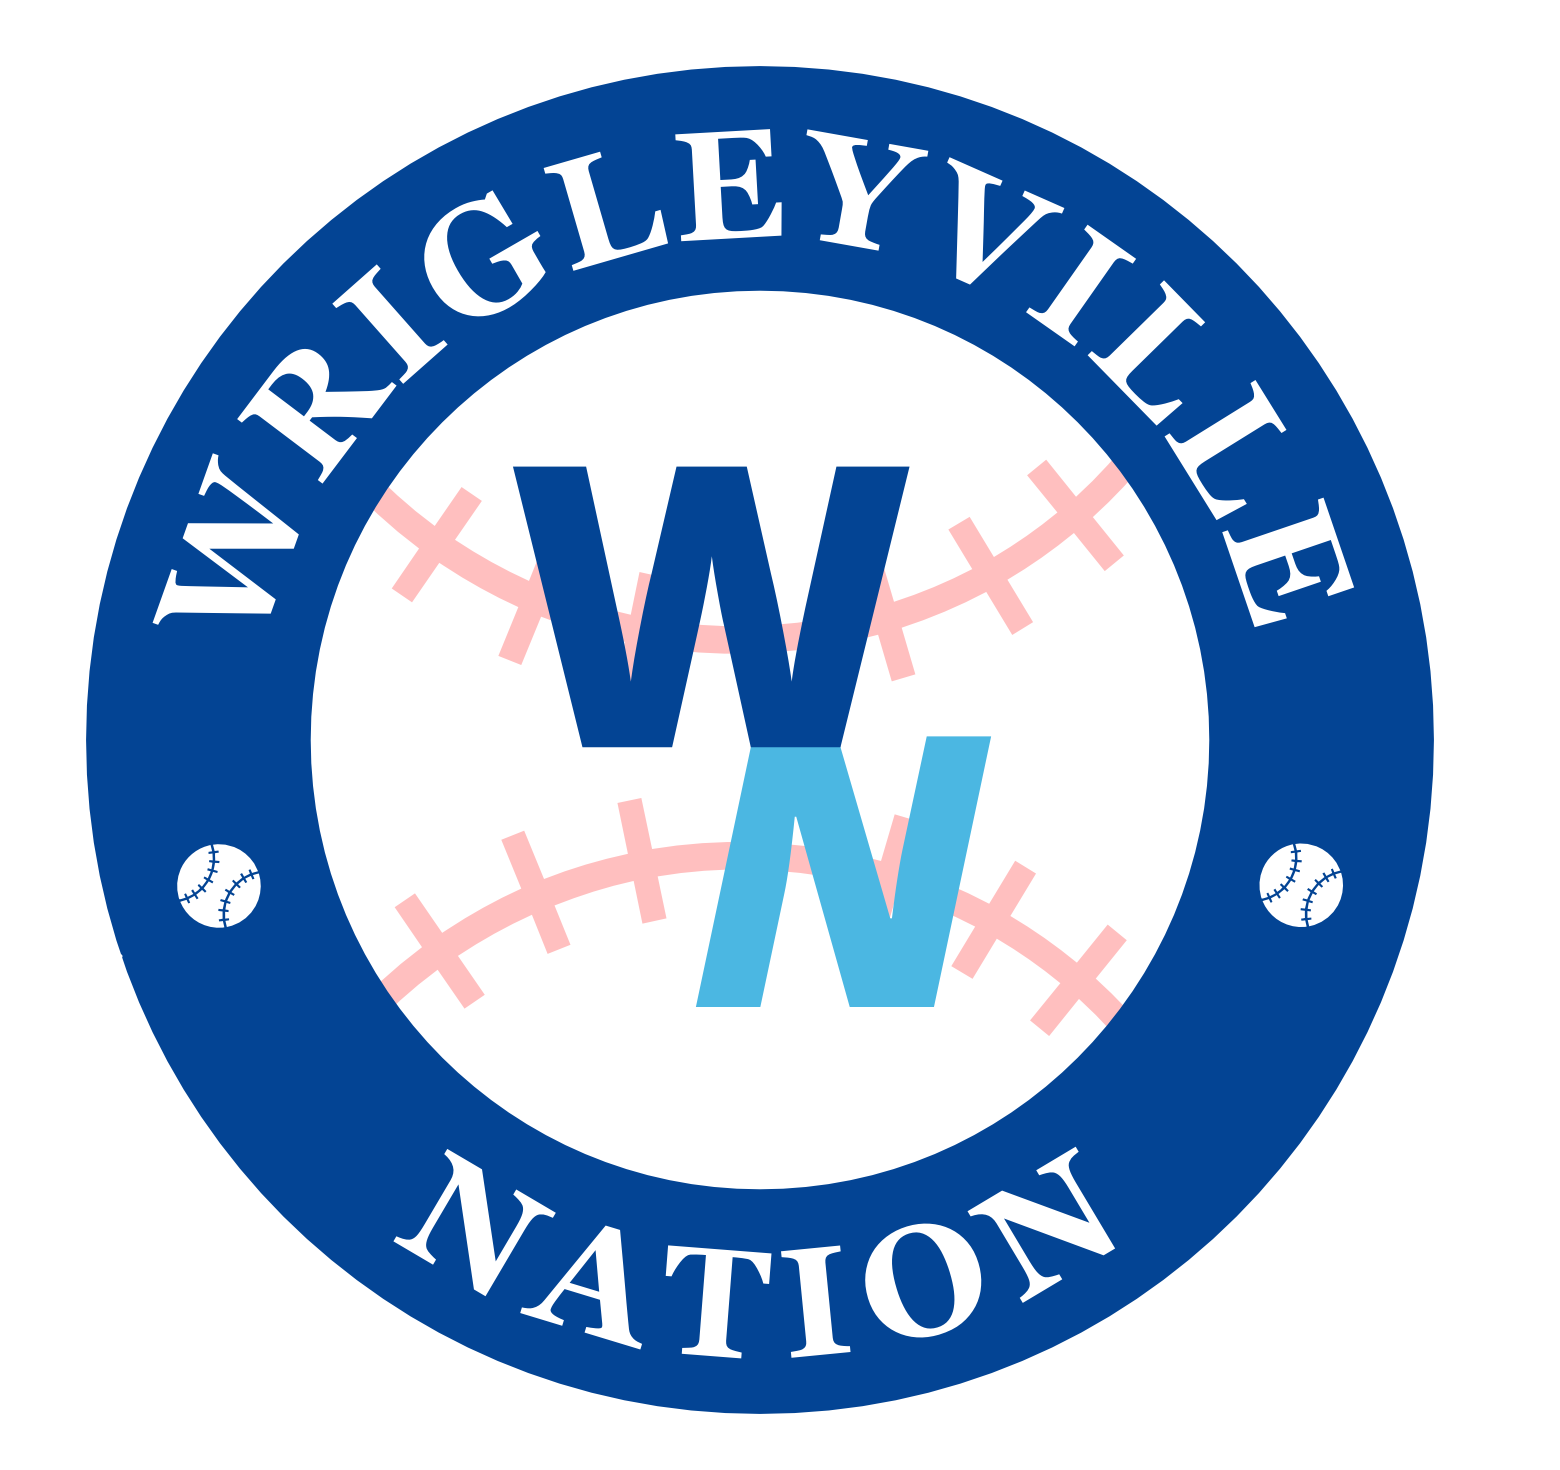 Wrigleyville Nation Ep 267 - Guests: Kevin McCaffrey & Adam Mamawala, Cubs Pitching, Roster Speculation, & More show art